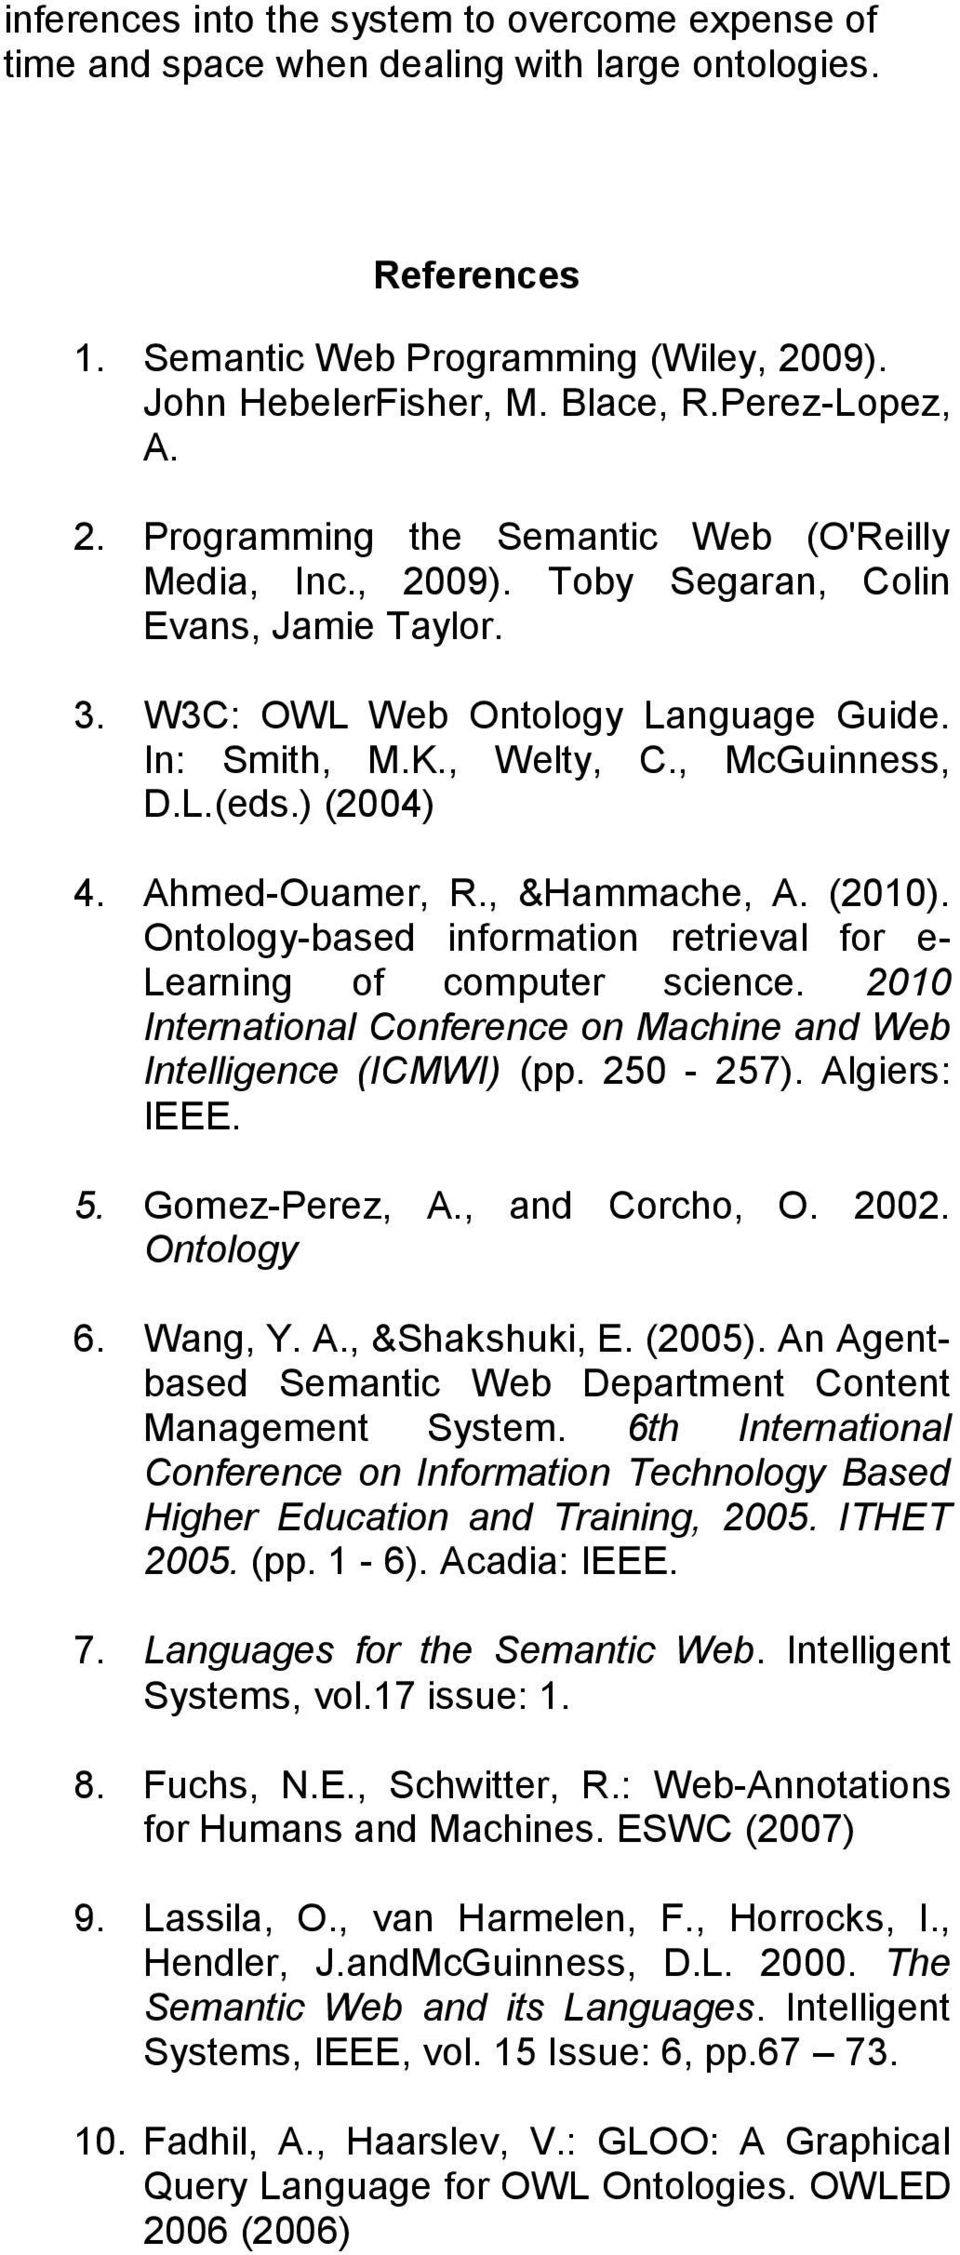 , McGuinness, D.L.(eds.) (2004) 4. Ahmed-Ouamer, R., &Hammache, A. (2010). Ontology-based information retrieval for e- Learning of computer science.